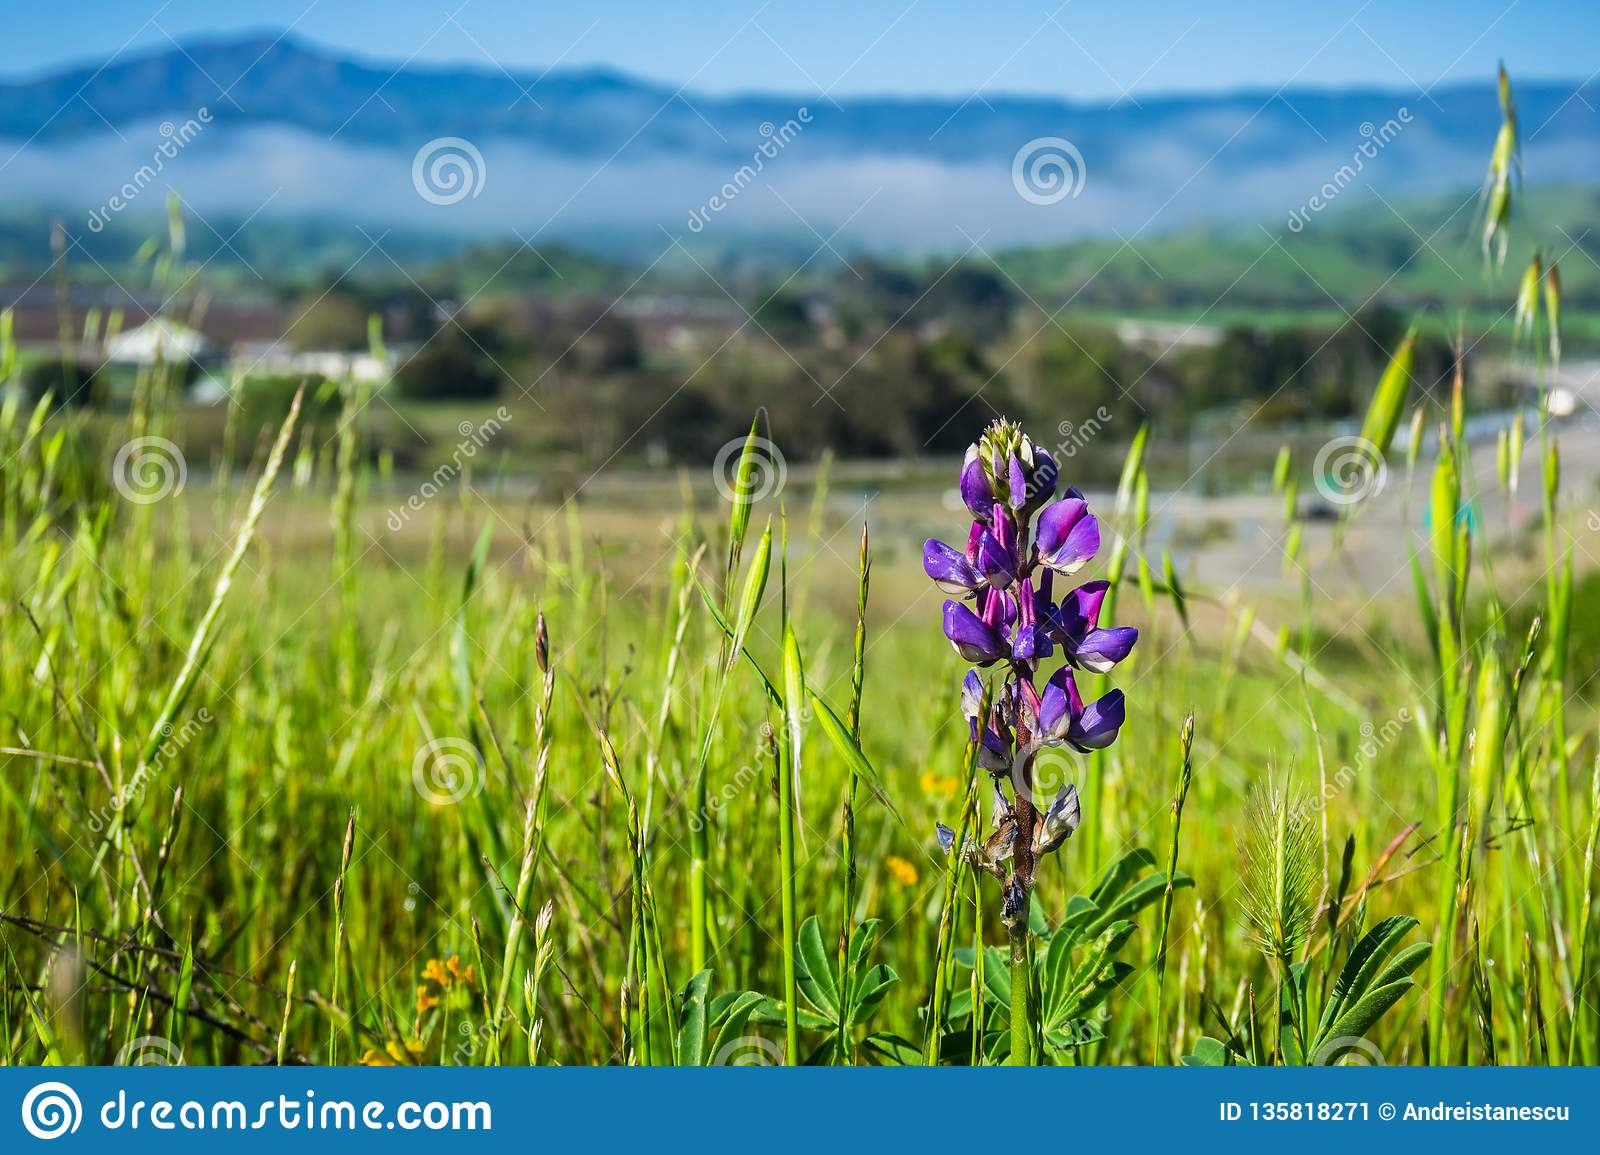 Lupine Flower Blooming Among Tall Grass South San Francisco Bay